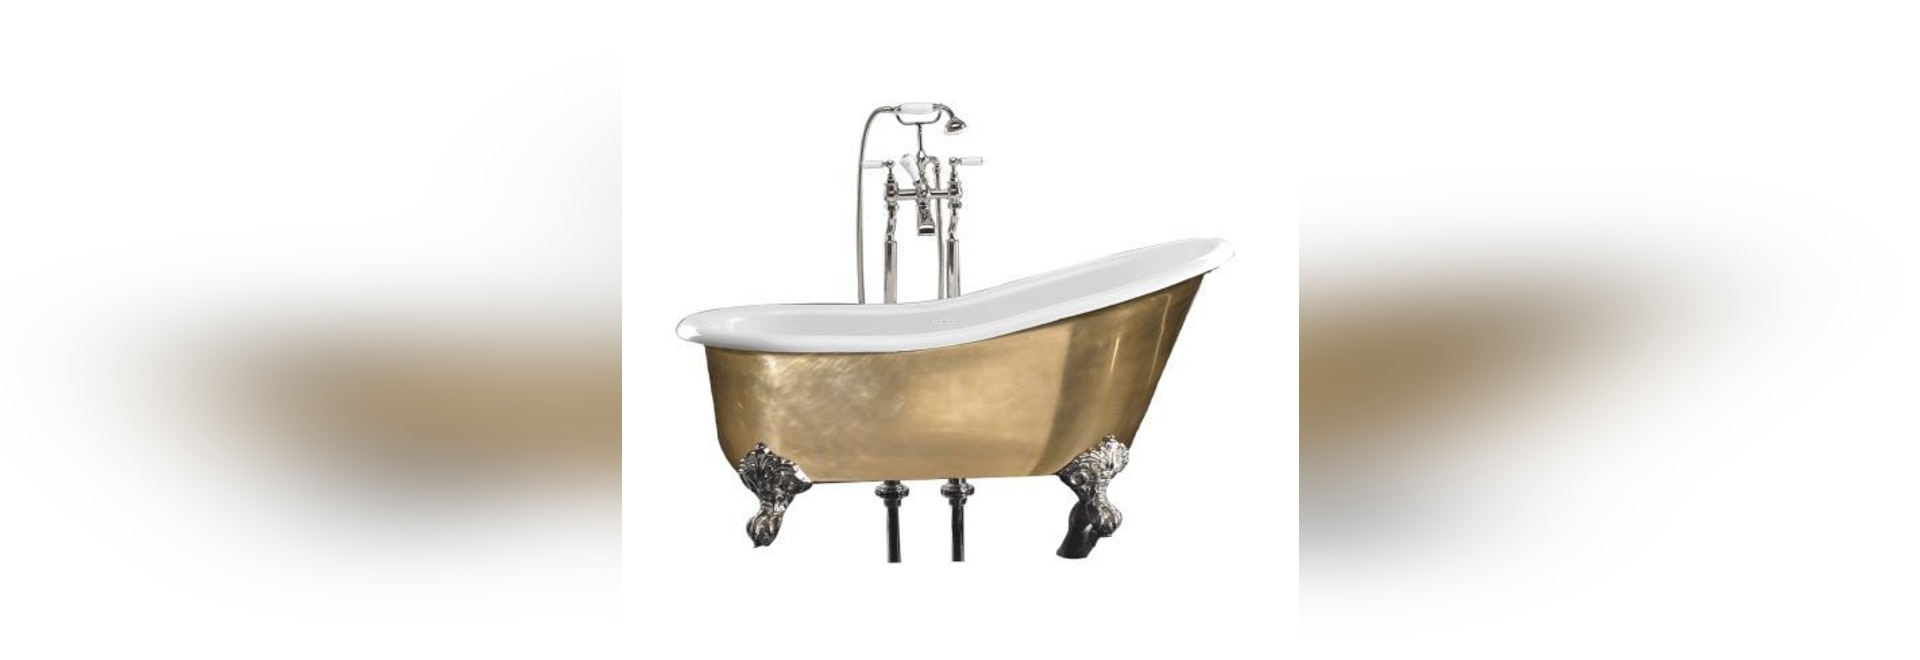 BROCKLEY bathtub with legs by Windsor Bathroom Company